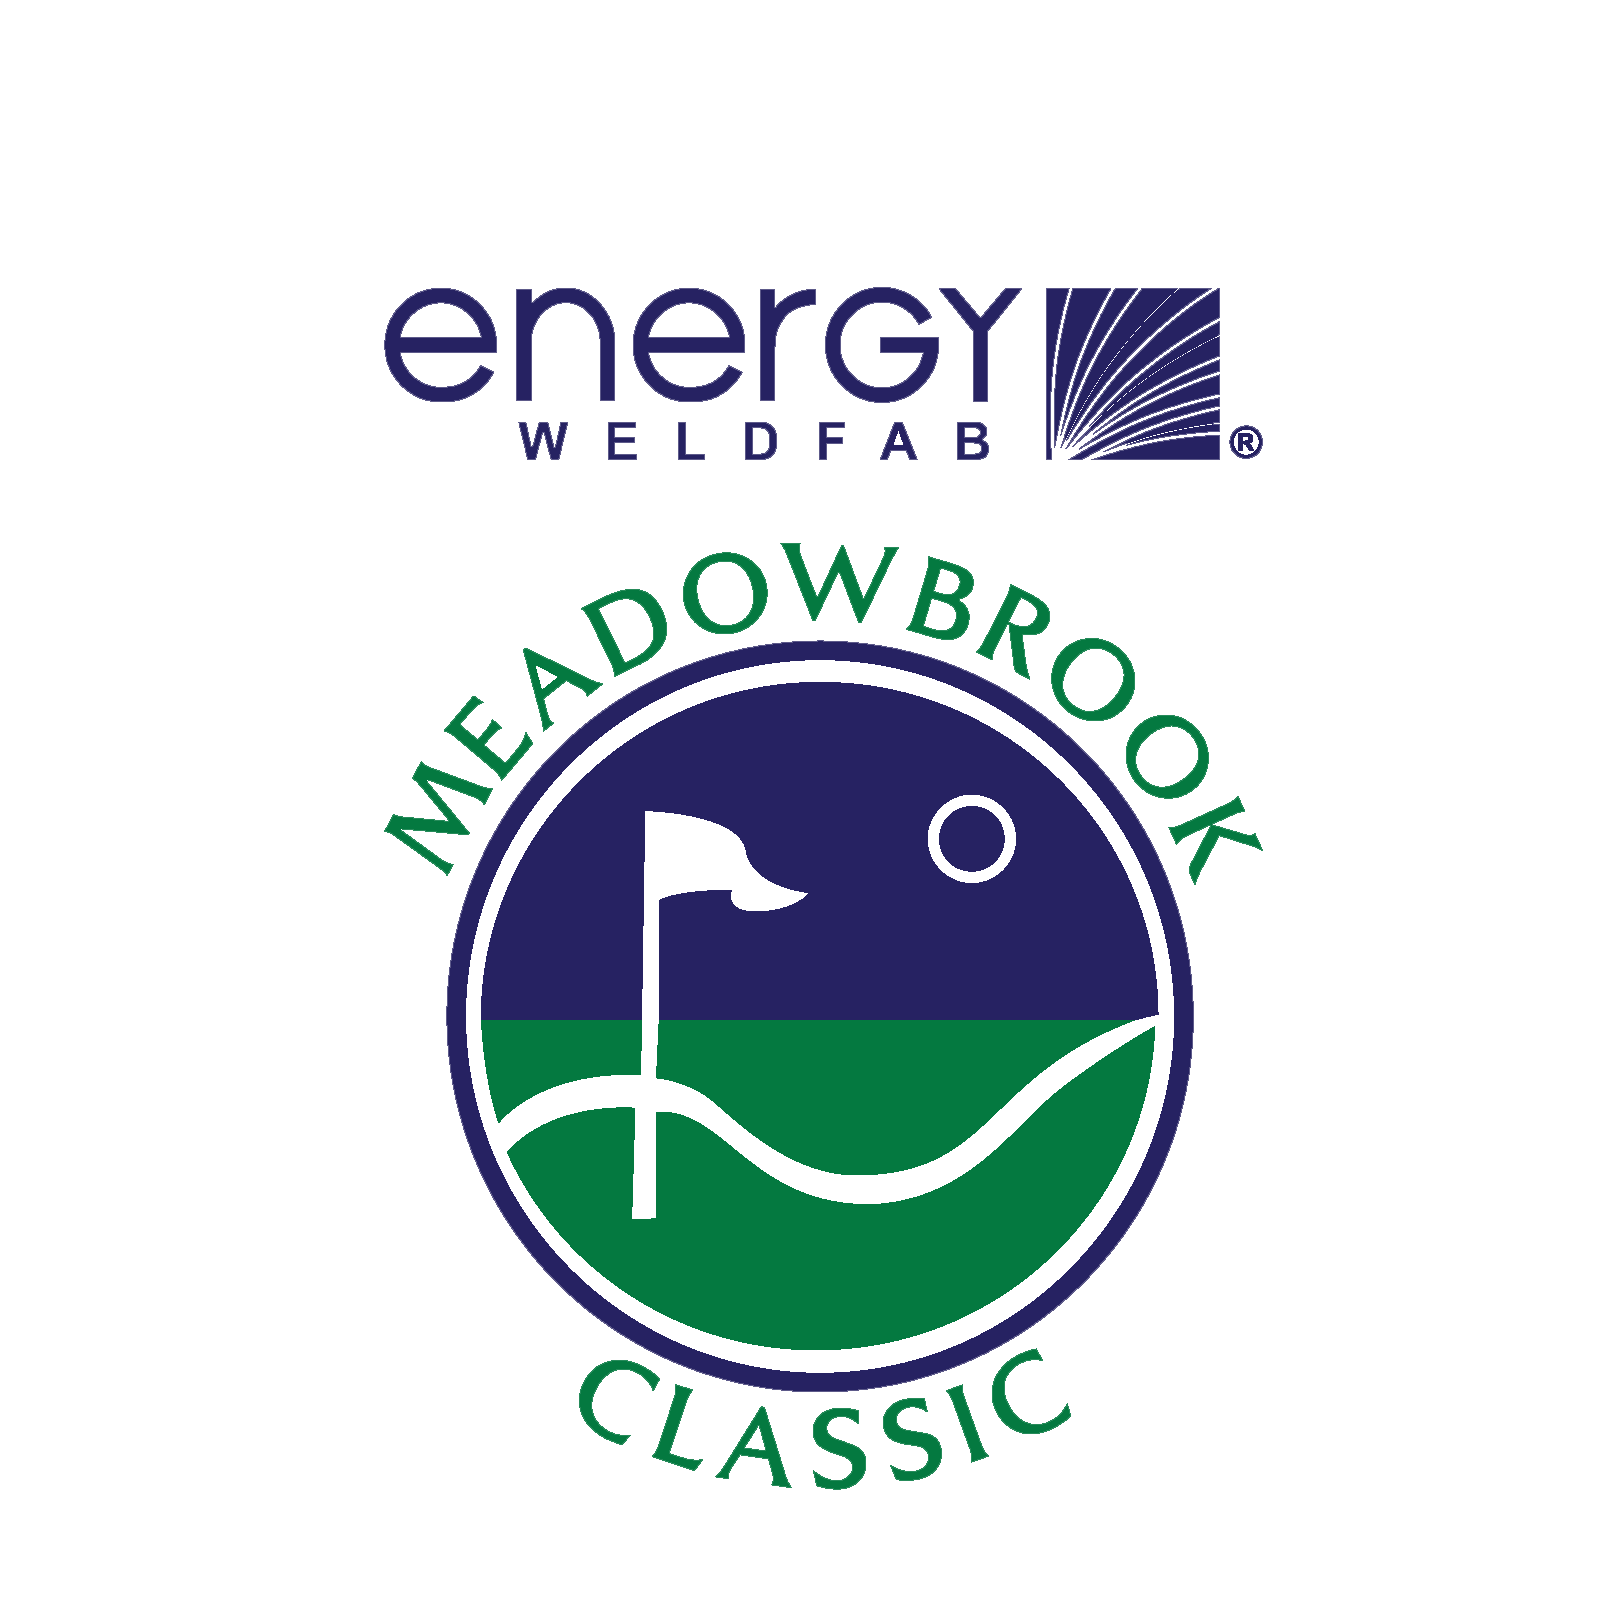 - The Classic Committee and Energy Weldfab look forward to the 83rd Meadowbrook Classic July 2020!